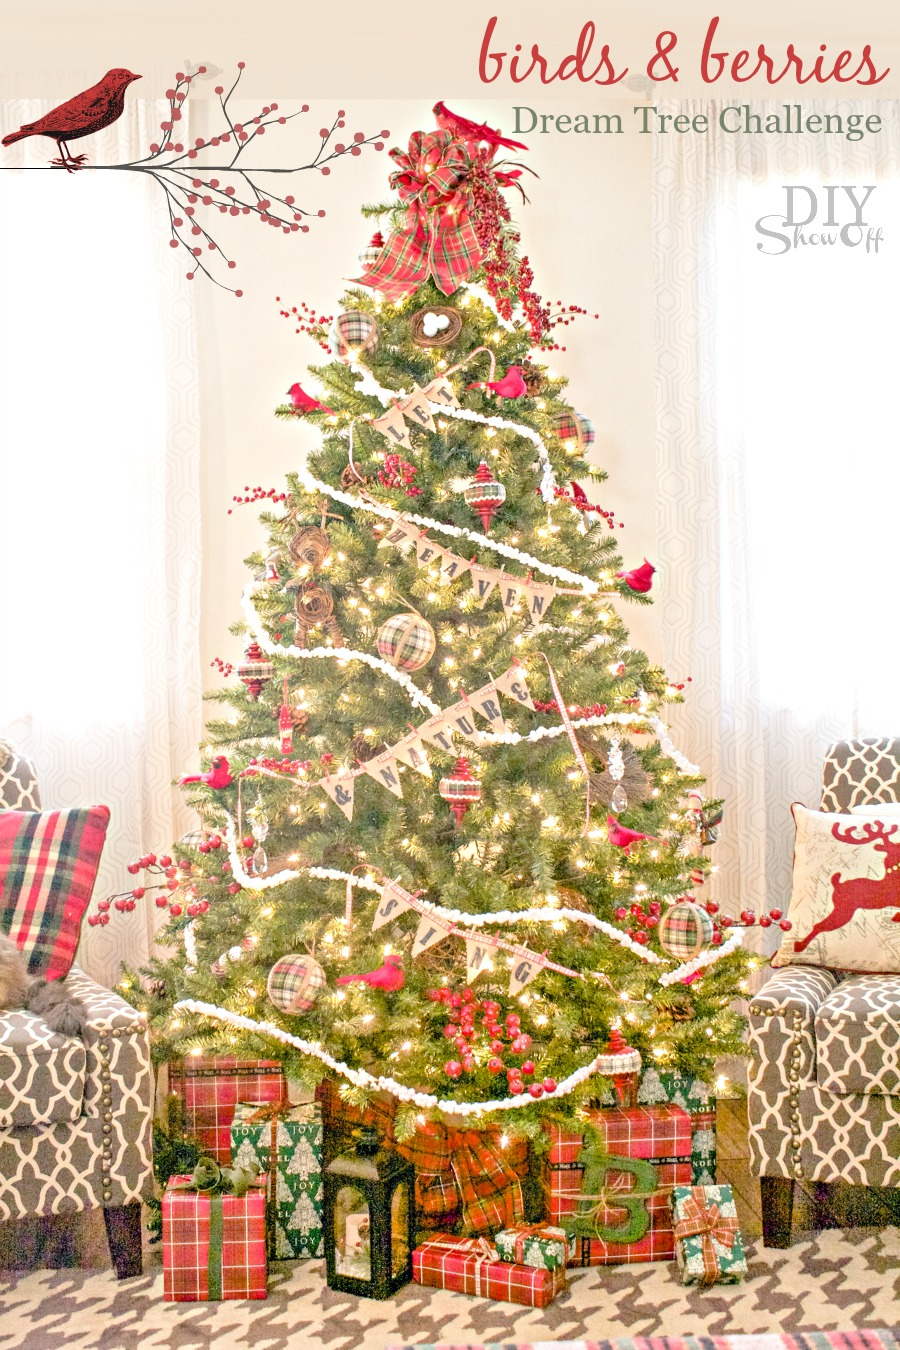 the michaels dream tree challenge mission is to bring you some holiday inspiration in preparation for seasonal decorating its not too early to start - When To Start Decorating For Christmas